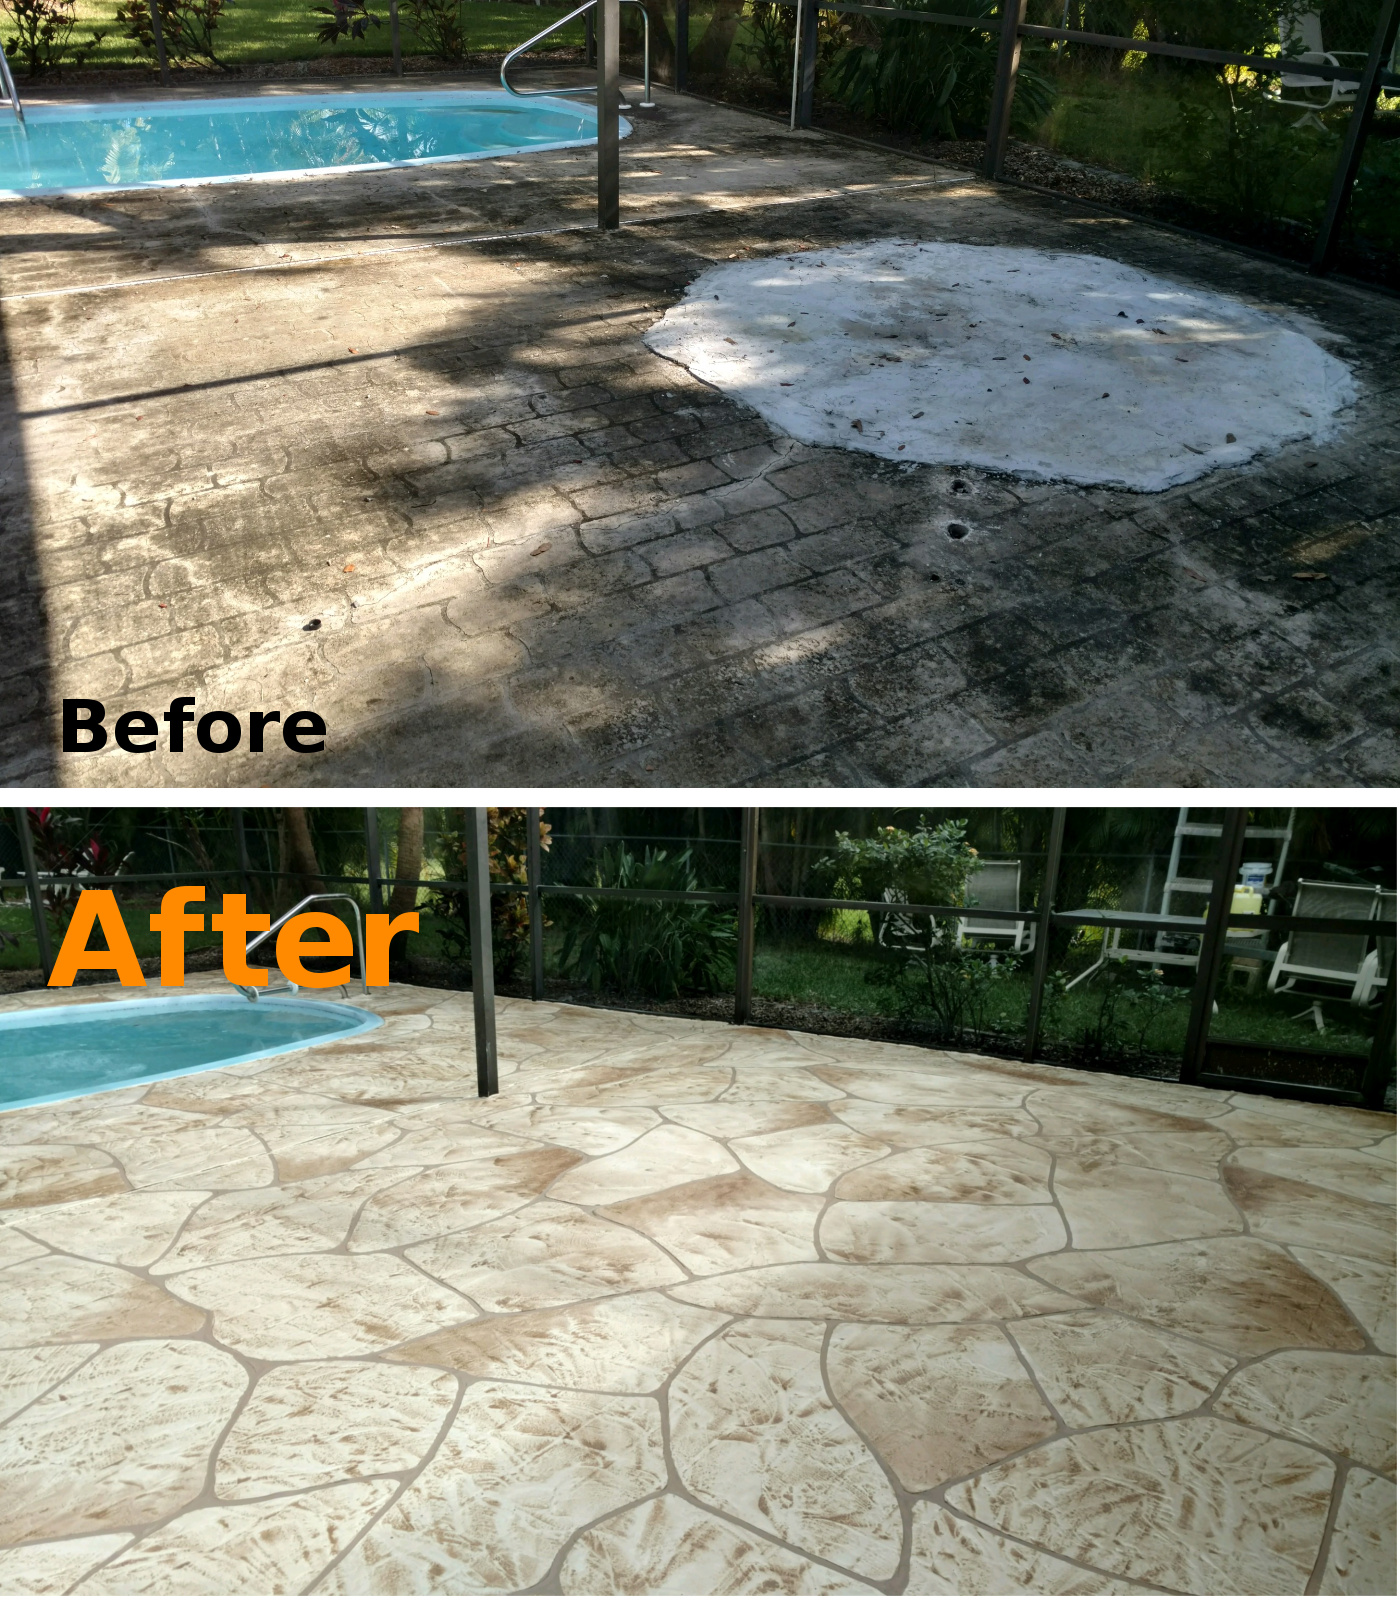 Before And After Concrete Resurfacing Pool Deck Cape Coral